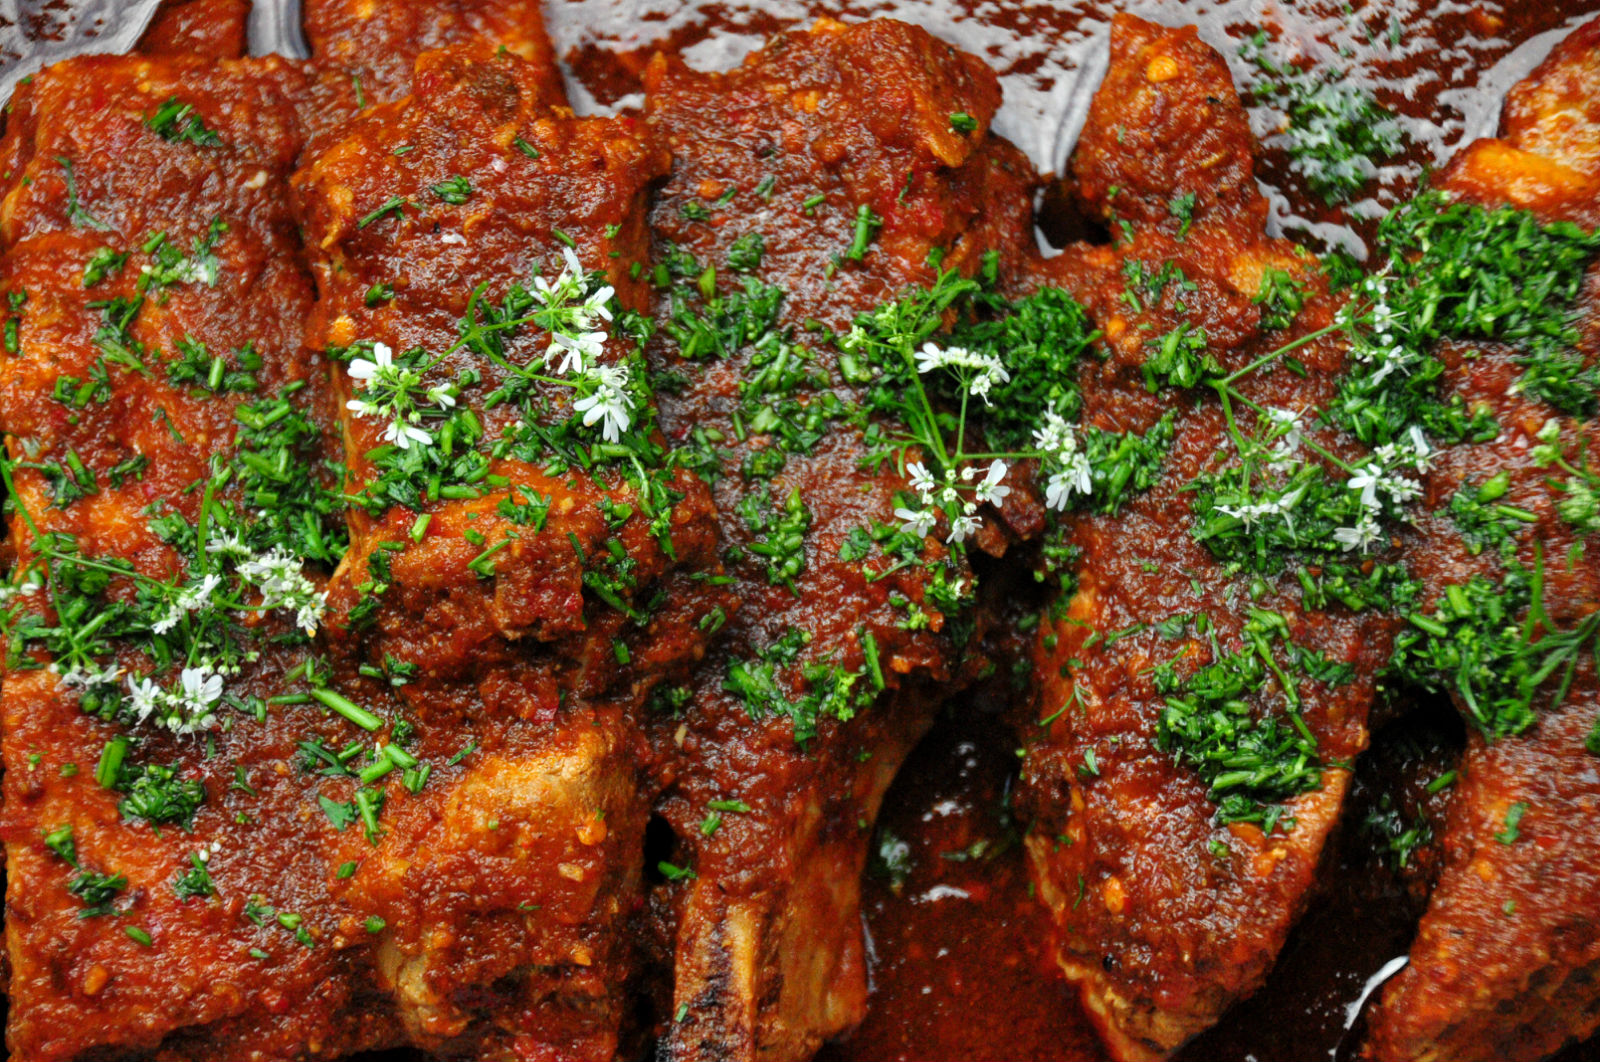 Southern style boneless pork rib recipes